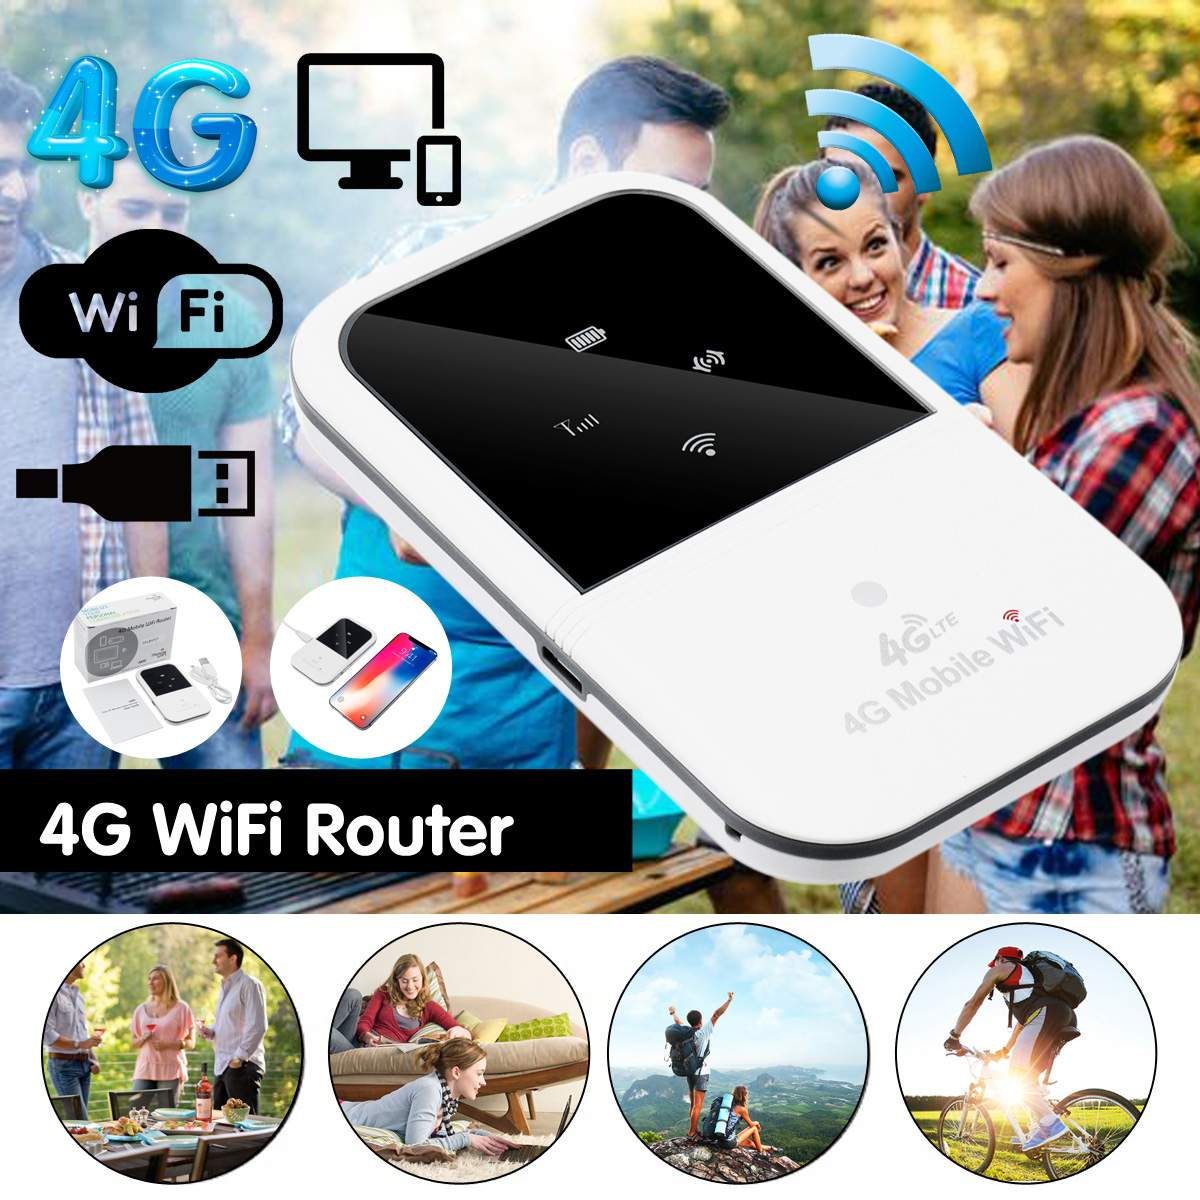 A800 4G Wireless Router Portable WiFi 802.11 B/g/n 4G 150Mbps Portable Router 4G Hotspot With SIM Slot Wireless Routers Repeater